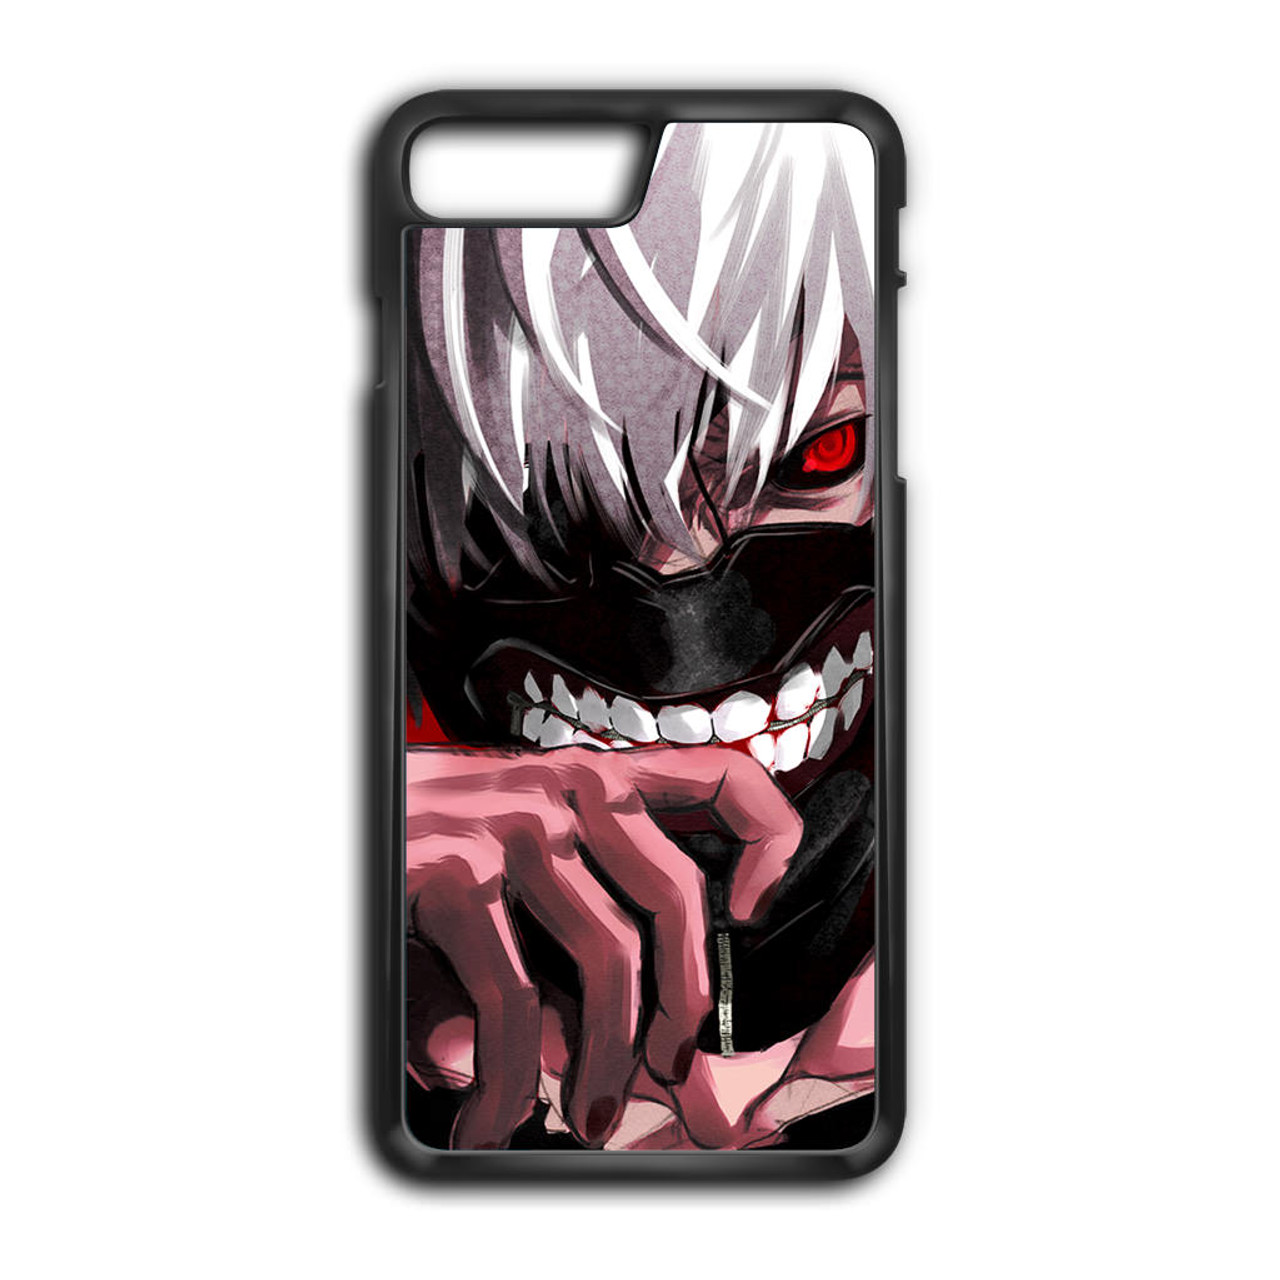 tokyo ghoul iphone 8 plus case